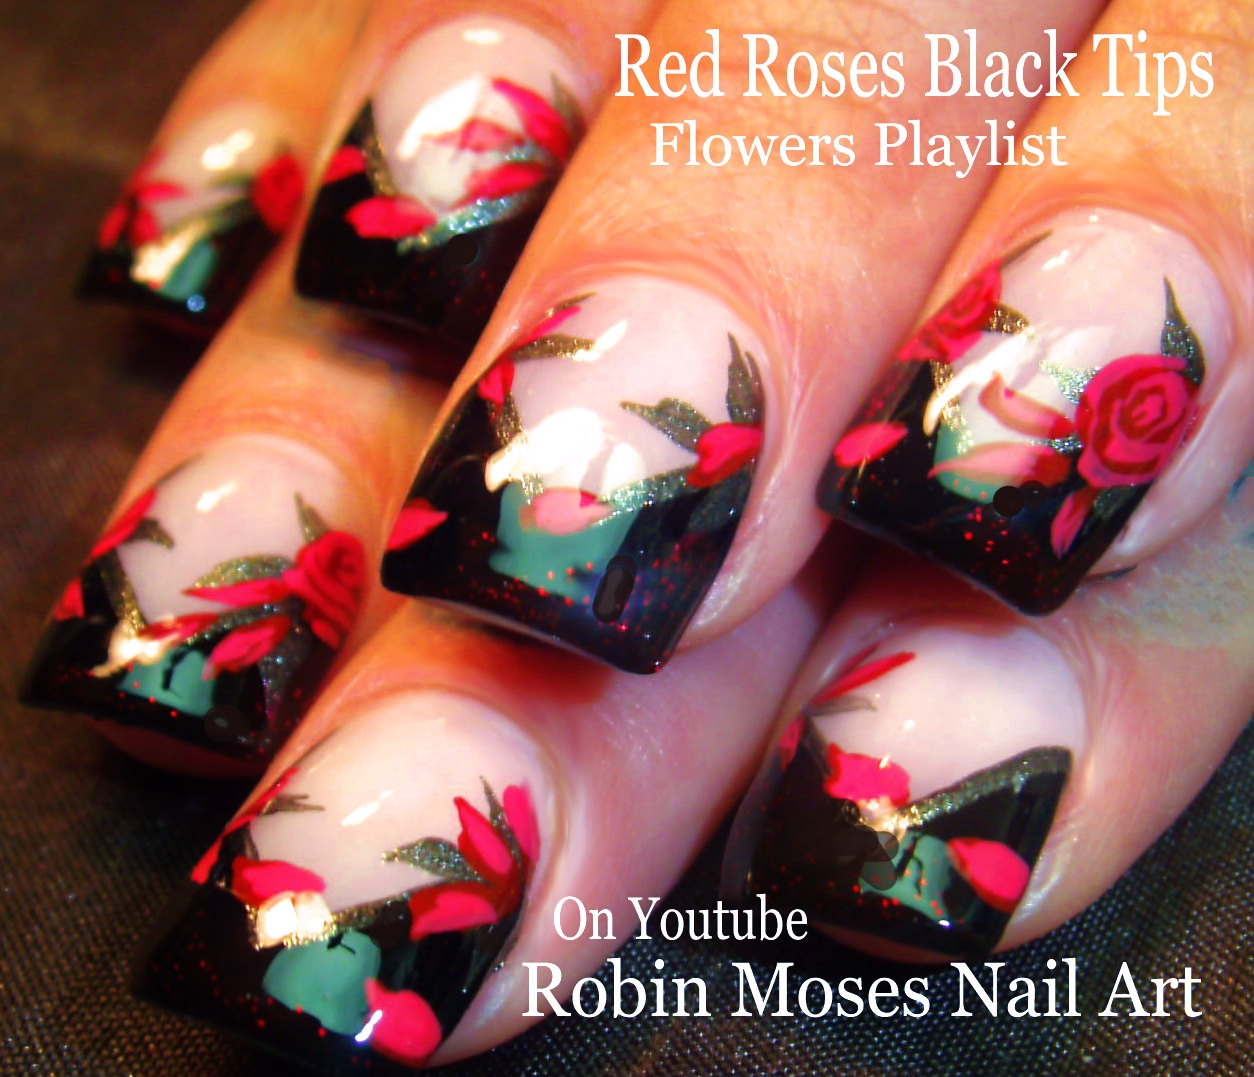 Robin moses nail art red roses on black tips roses do it roses do it yourself how to paint roses red rose ideas red roses clip art red roses nail art red rose nails rose nails red rose design solutioingenieria Choice Image